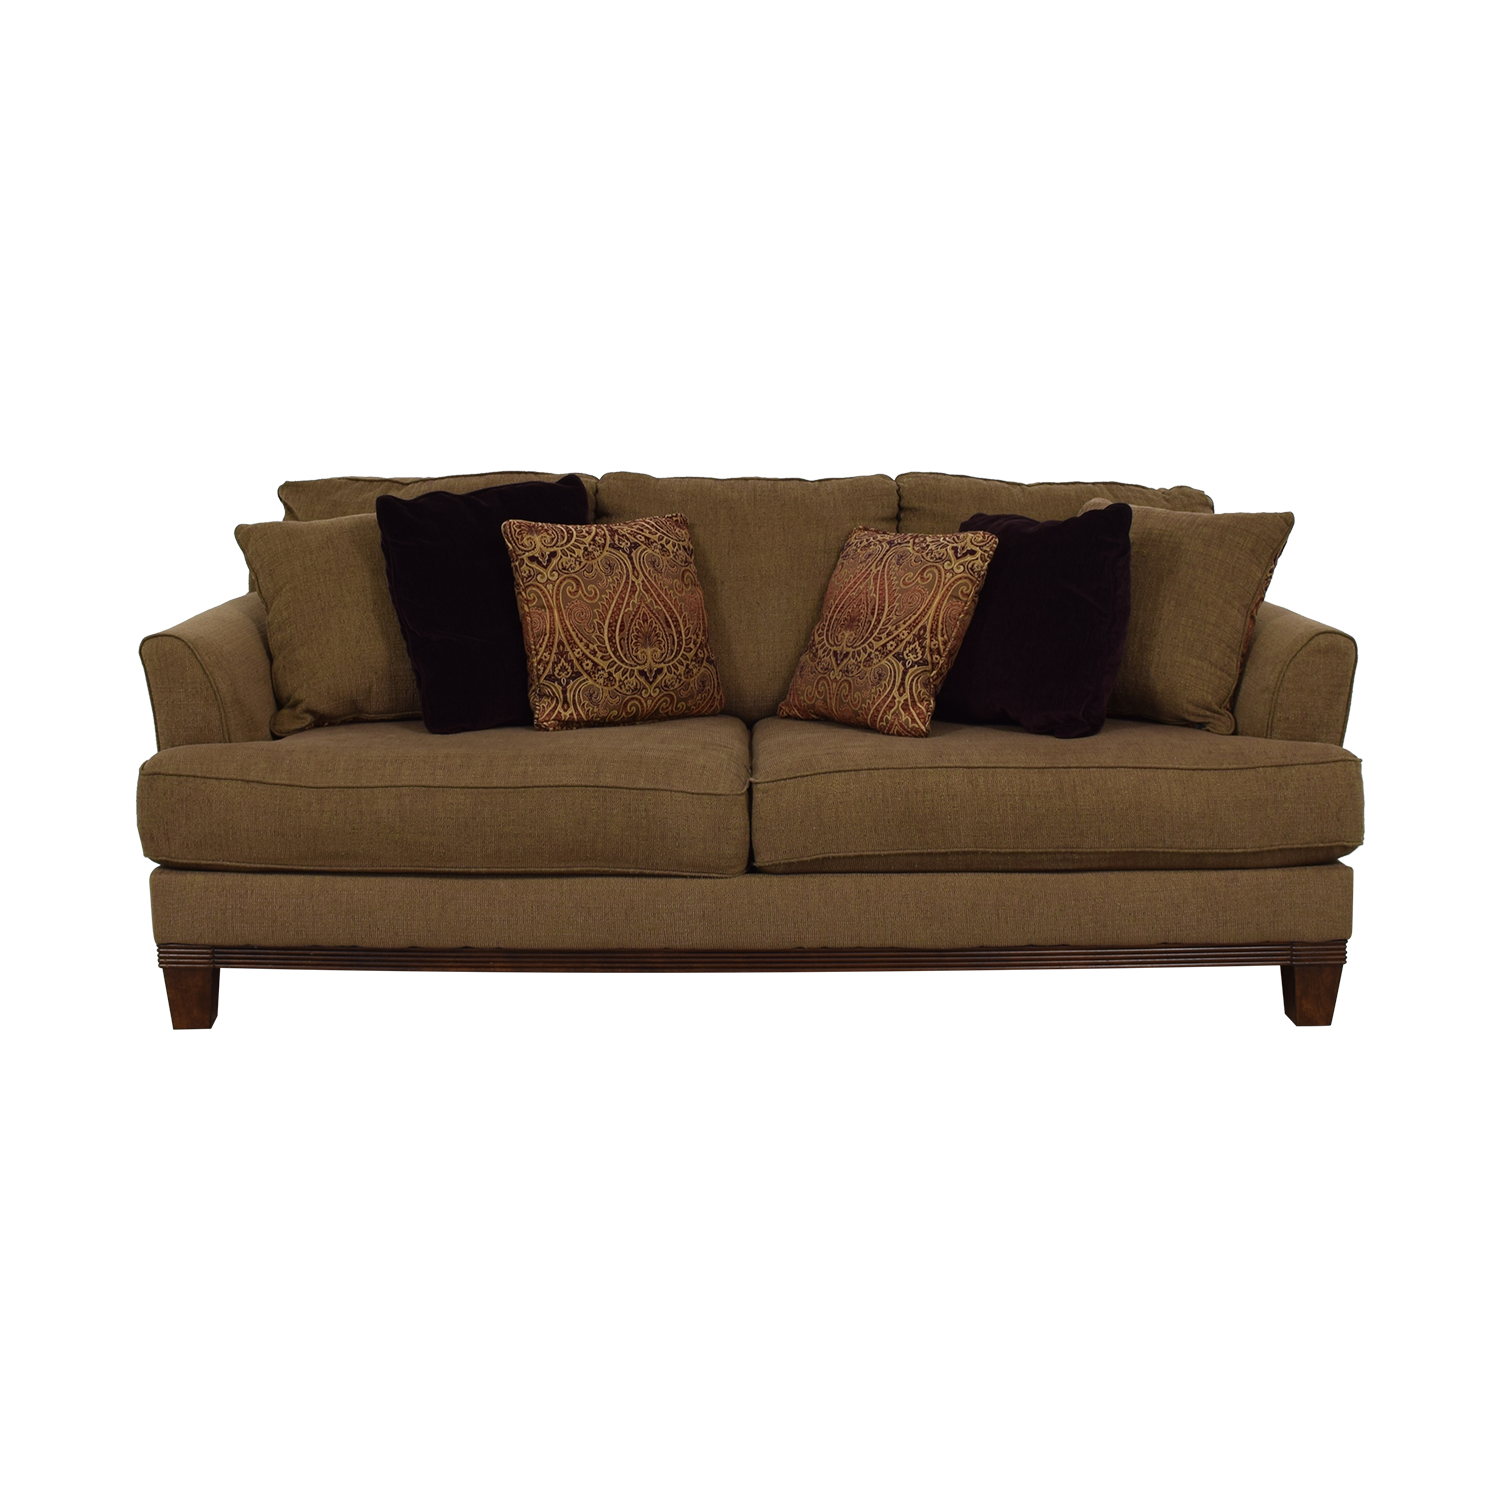 Ashley Furniture Ashley Furniture Brown Two-Cushion Sofa on sale